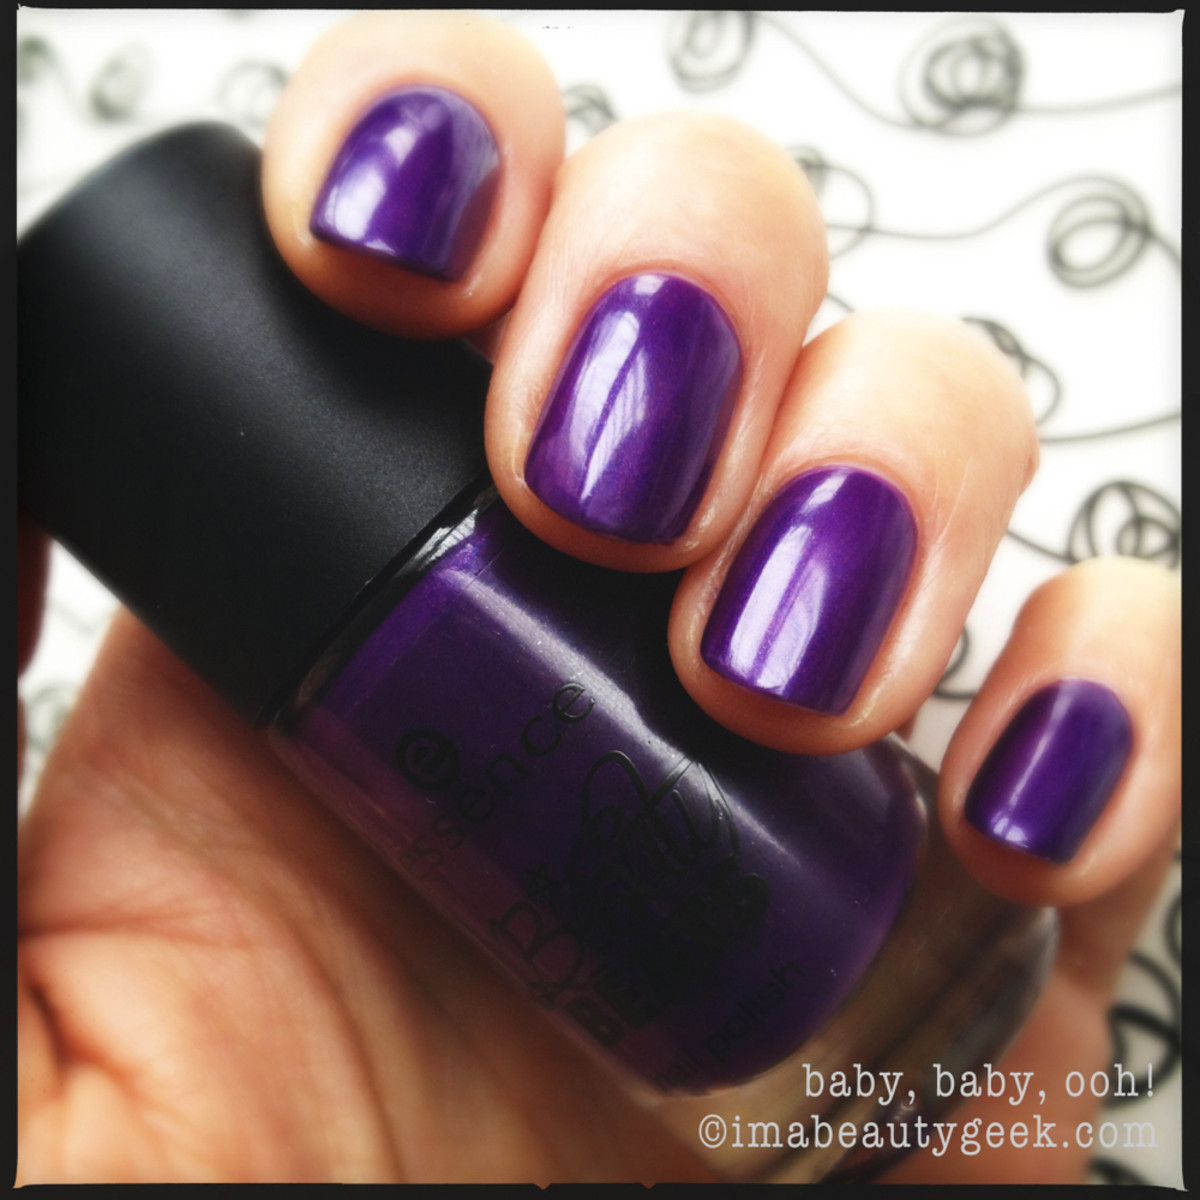 Justin Bieber Nail Polish: Essence Beauty Beats, Swatches Yo ...